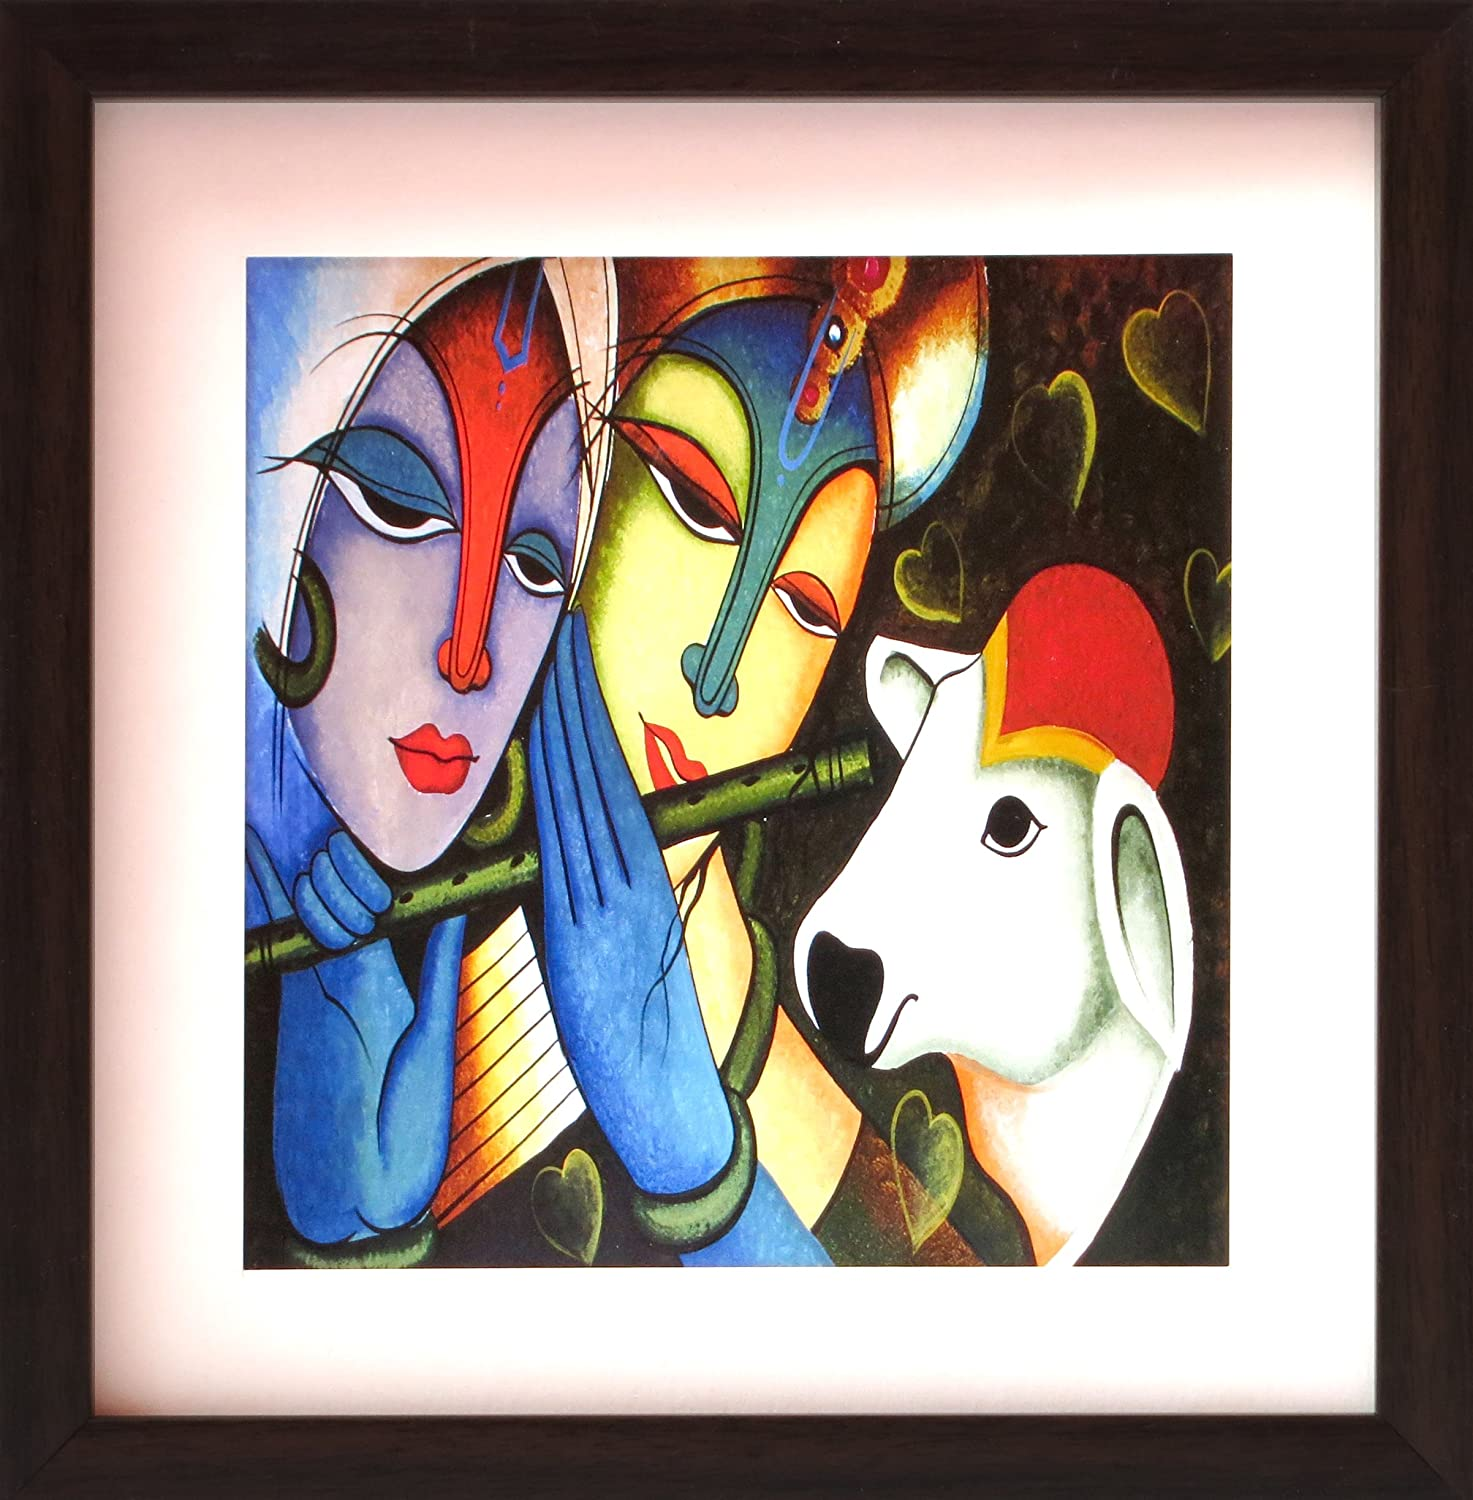 HandicraftStore Lord Radha Krishna Cow, a Decorative Poster Painting Home/Office Décor, a Paper Poster Framing